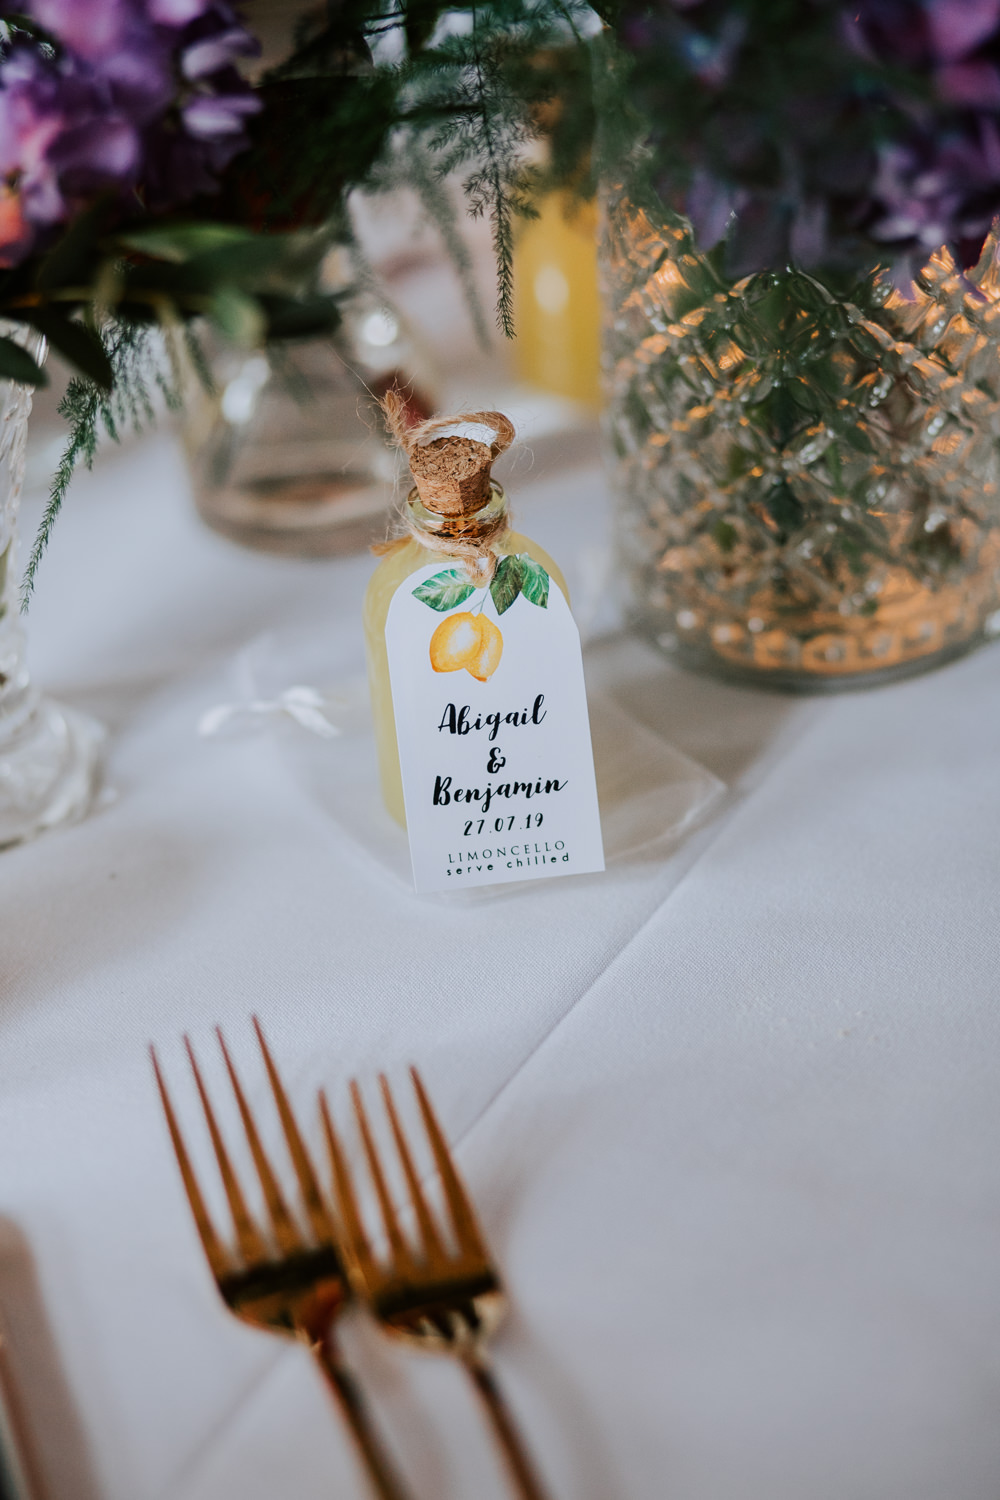 Limoncello Favours Favors Butley Priory Wedding Sally Rawlins Photography